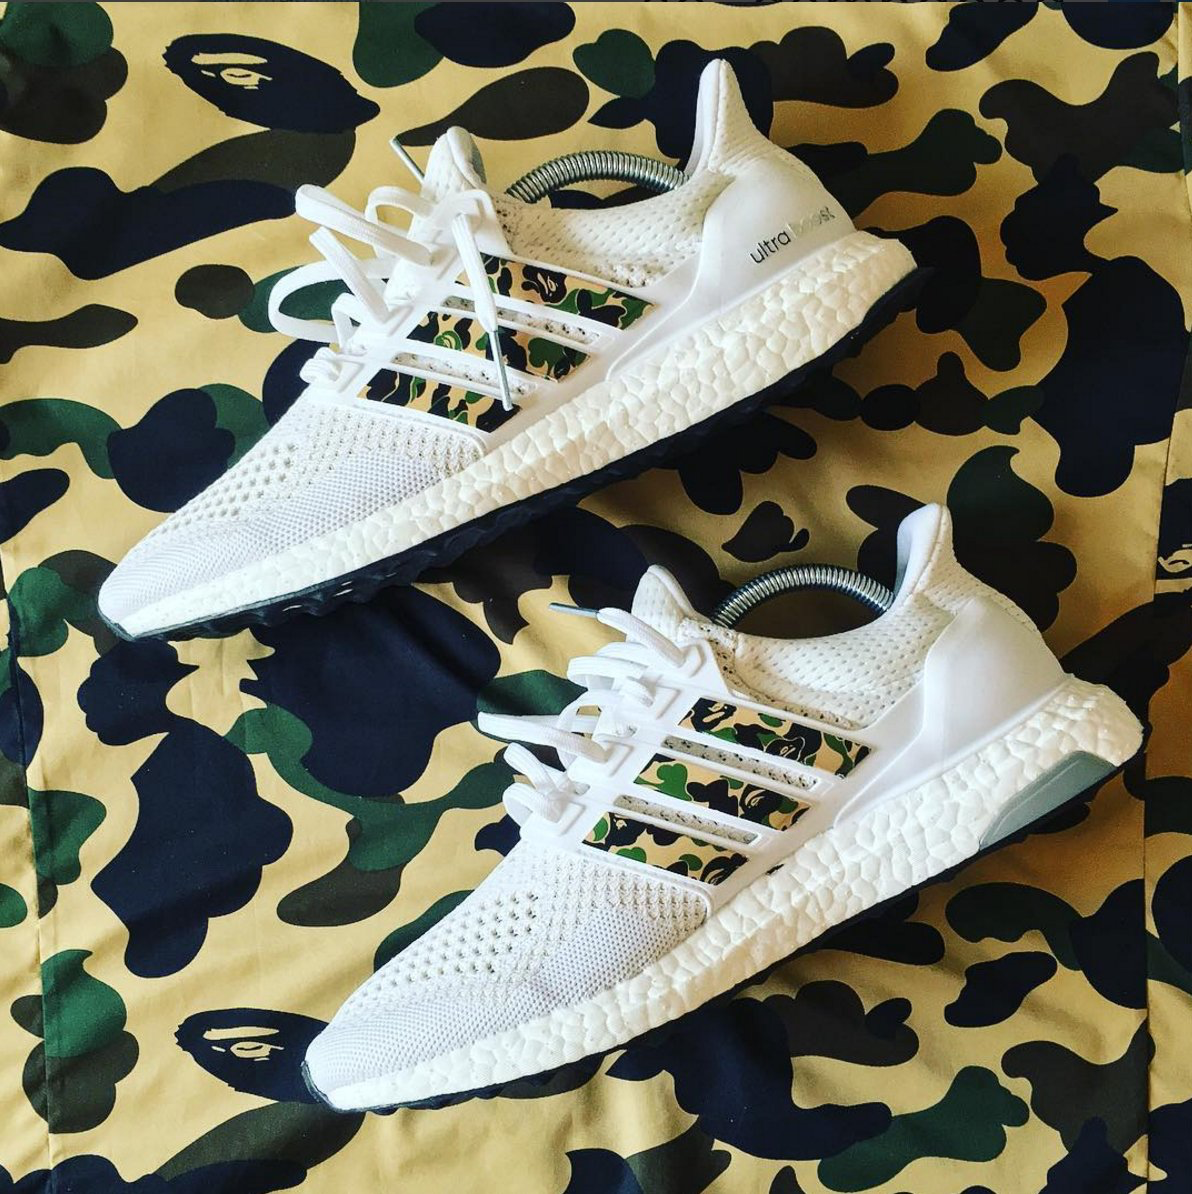 outlet store e9d54 61e7b Bape x Adidas Ultra Boosts. | Men's Shoes in 2019 | Sneakers ...